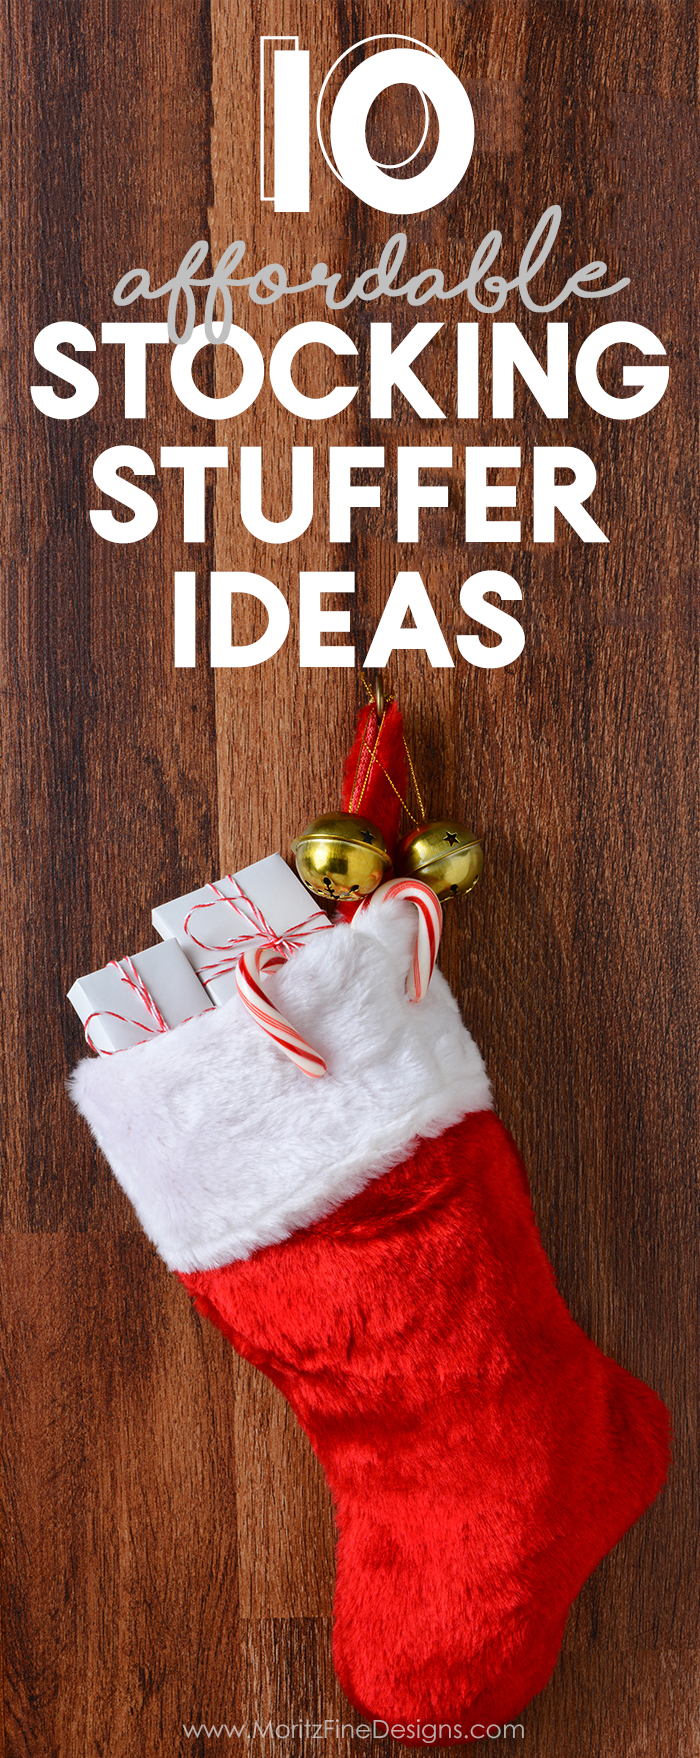 Your family will love these 10 affordable and creative stocking stuffer ideas for Christmas. Awesome ideas for kids, teens and adults. Free printable Holiday Coupon Book included. #stockingstufferideas #cheapstockingstuffers #printablecouponbook #christmasideasforkids #freeprintable